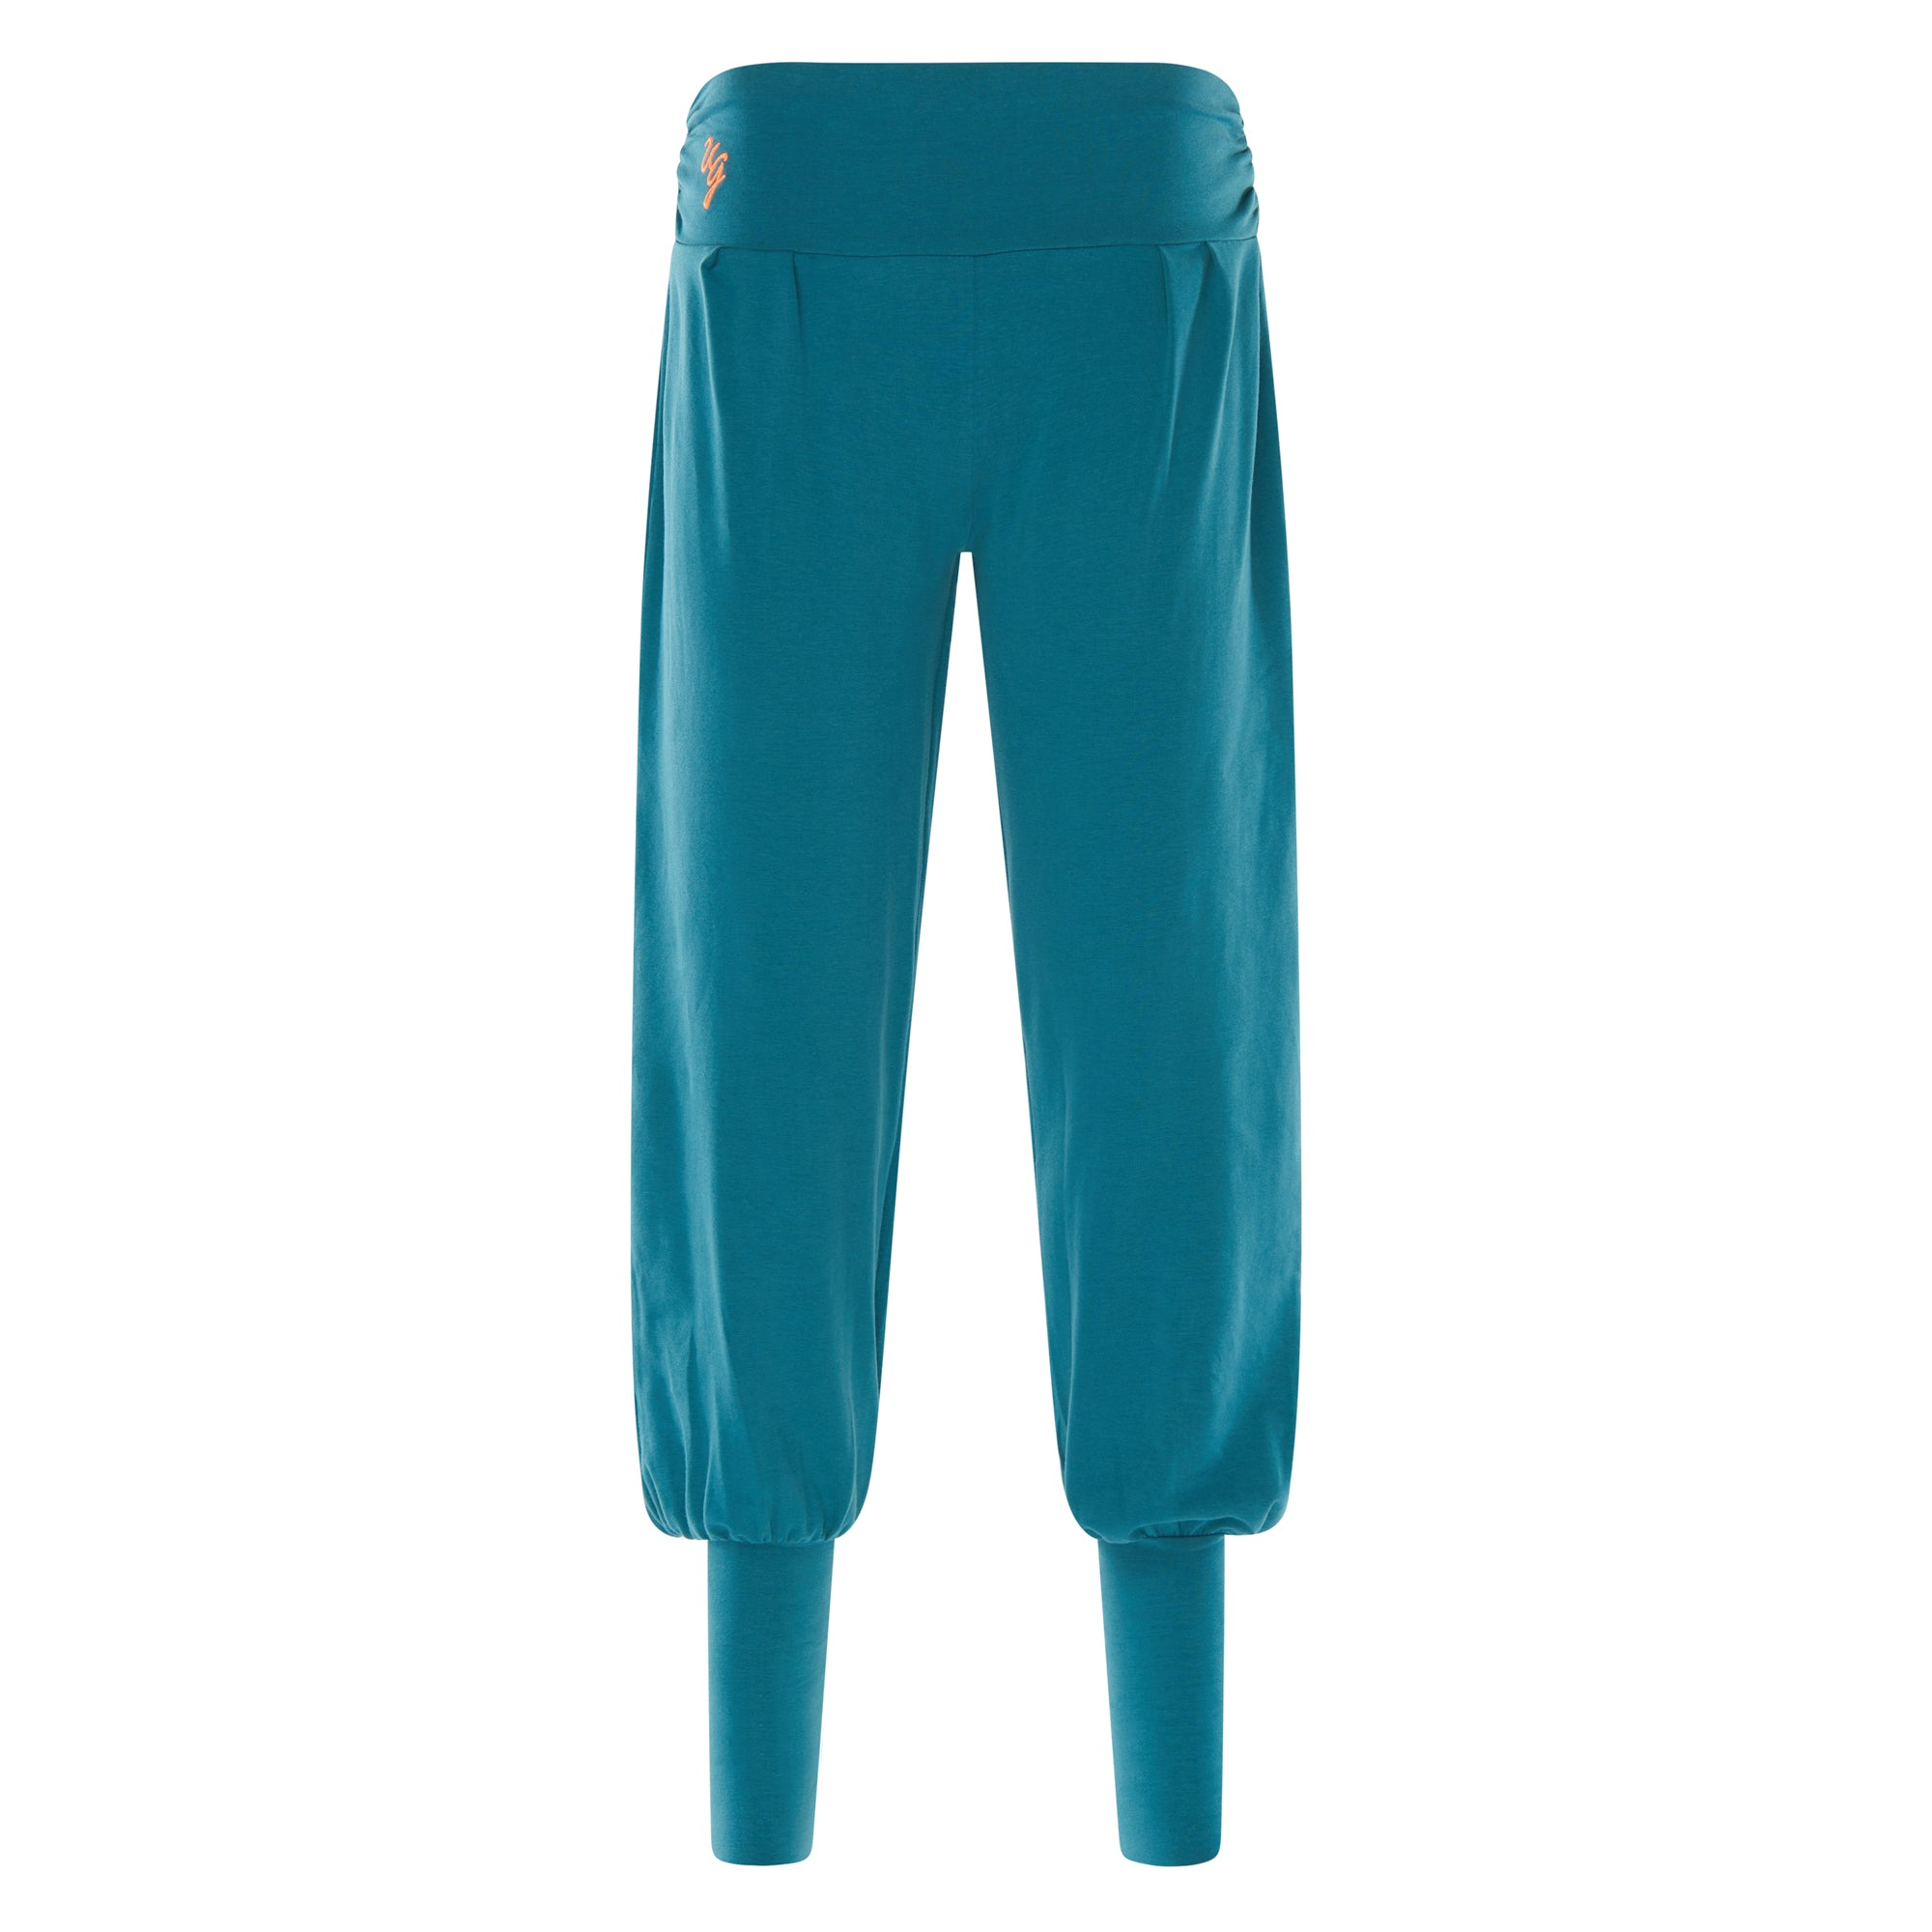 Urban Goddess Dakini Yoga Pants